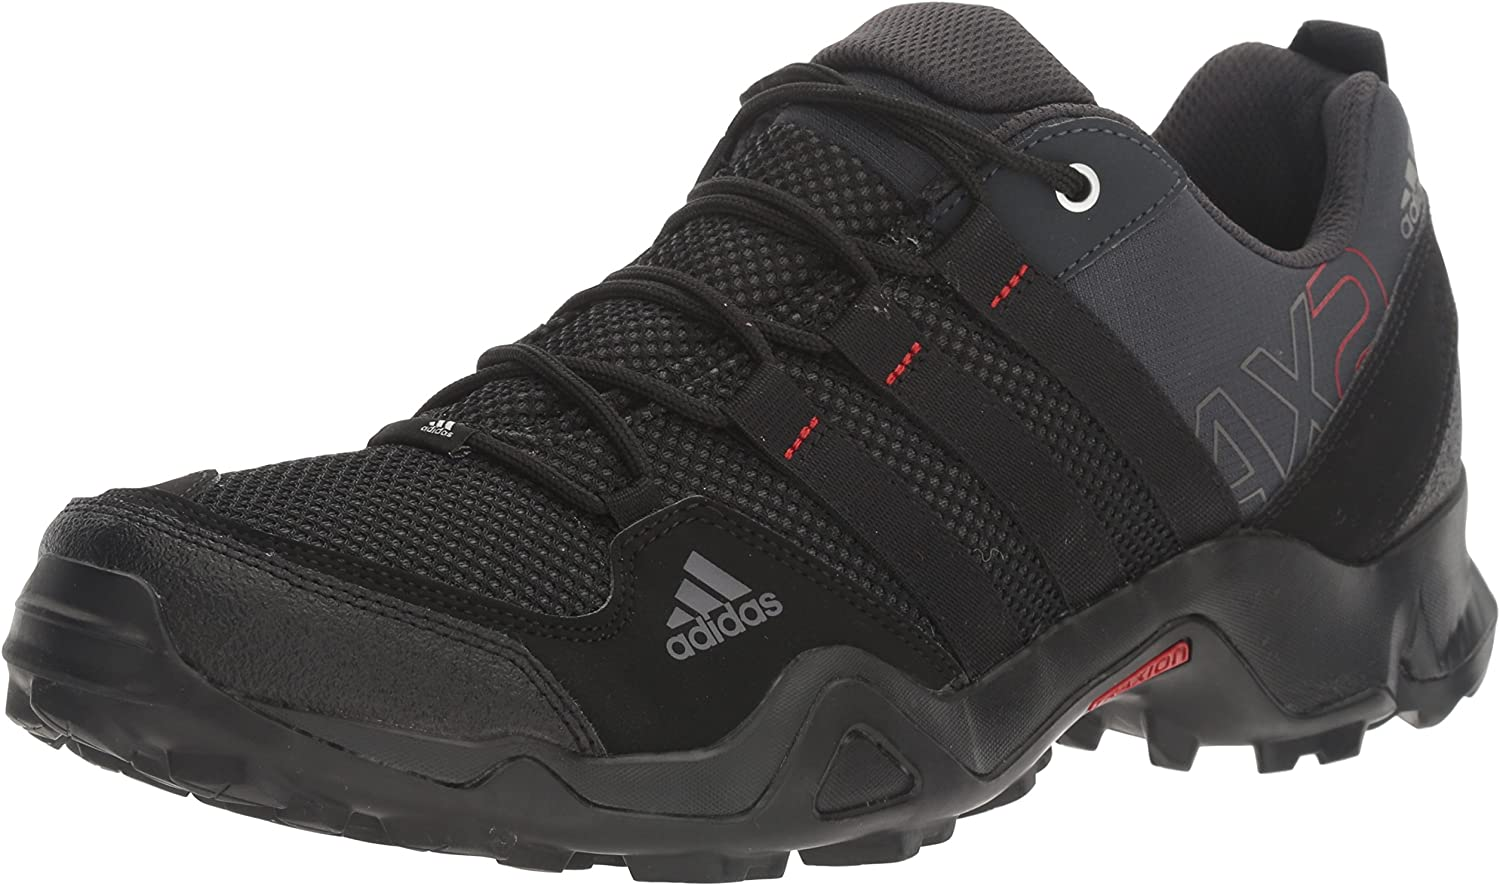 Adidas Outdoor Men's Ax 2 Hiking shoes